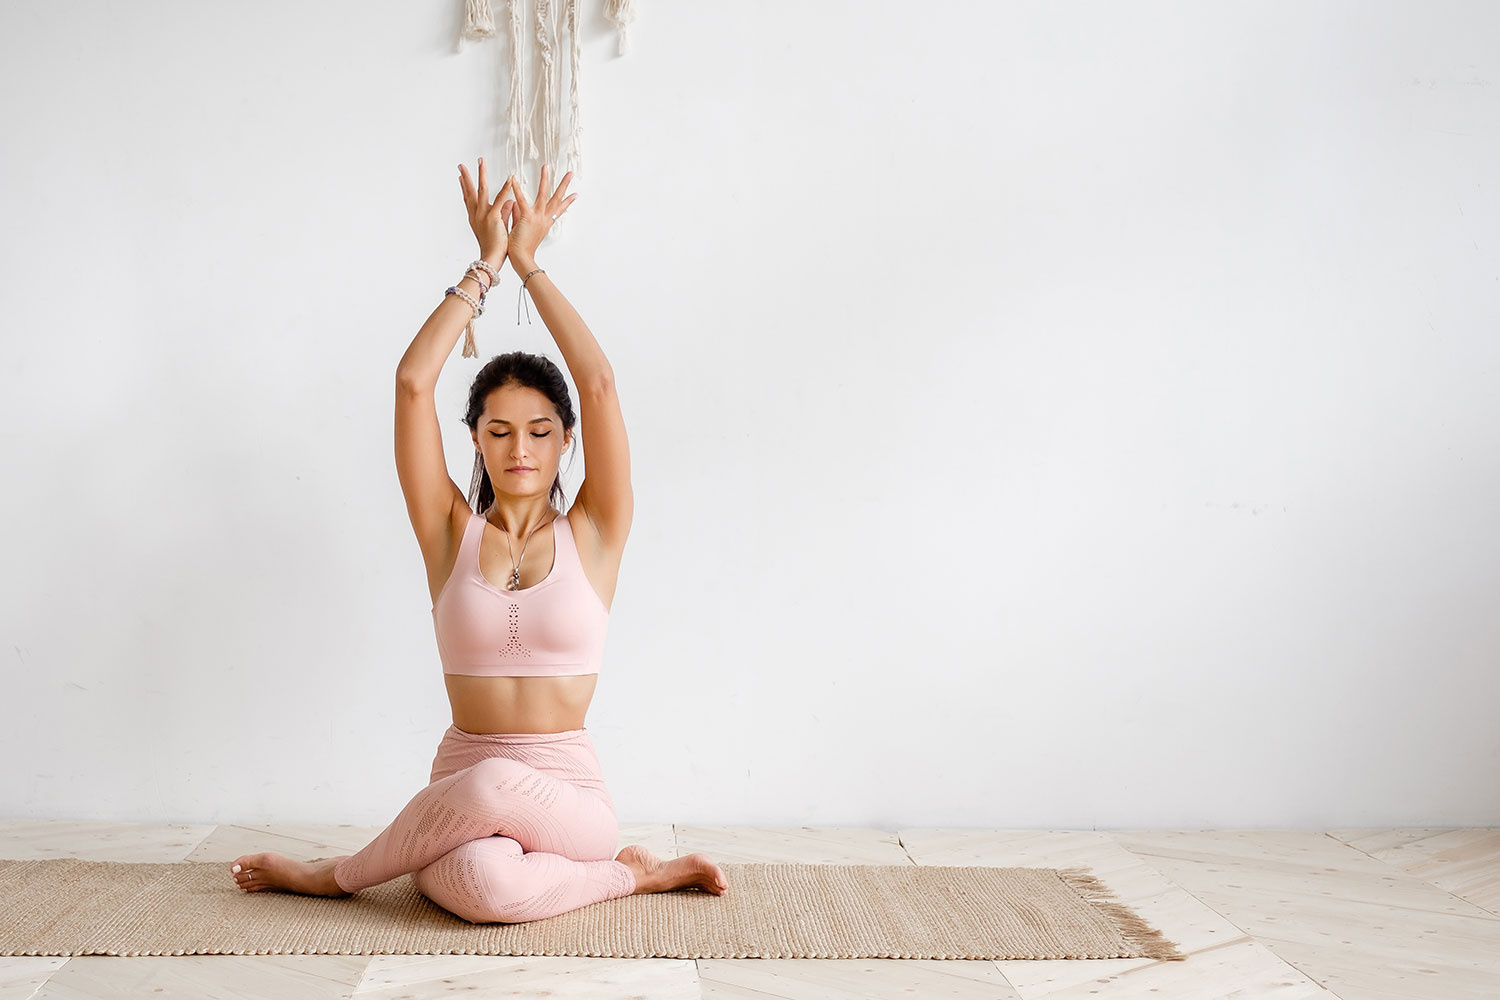 Yoga For Scoliosis: 10 Ways to Use Yoga for Scoliosis